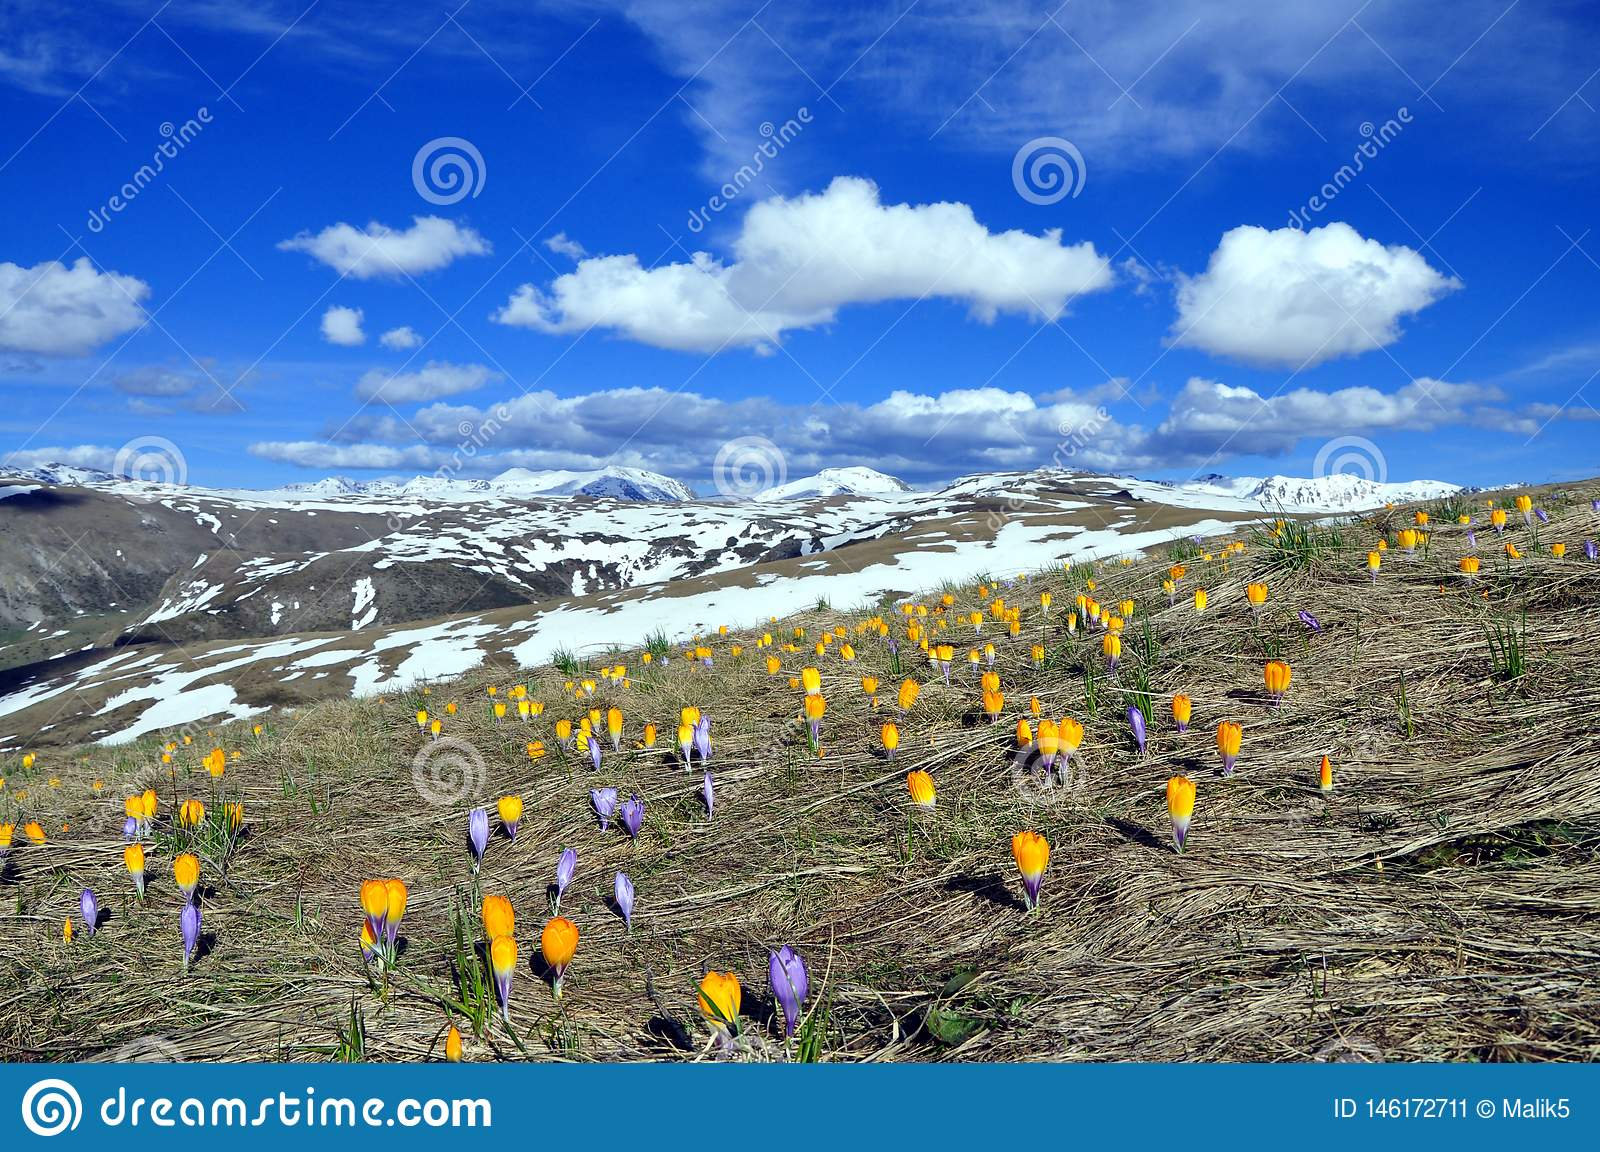 Spring Landscape with Many Crocuses in The mountain